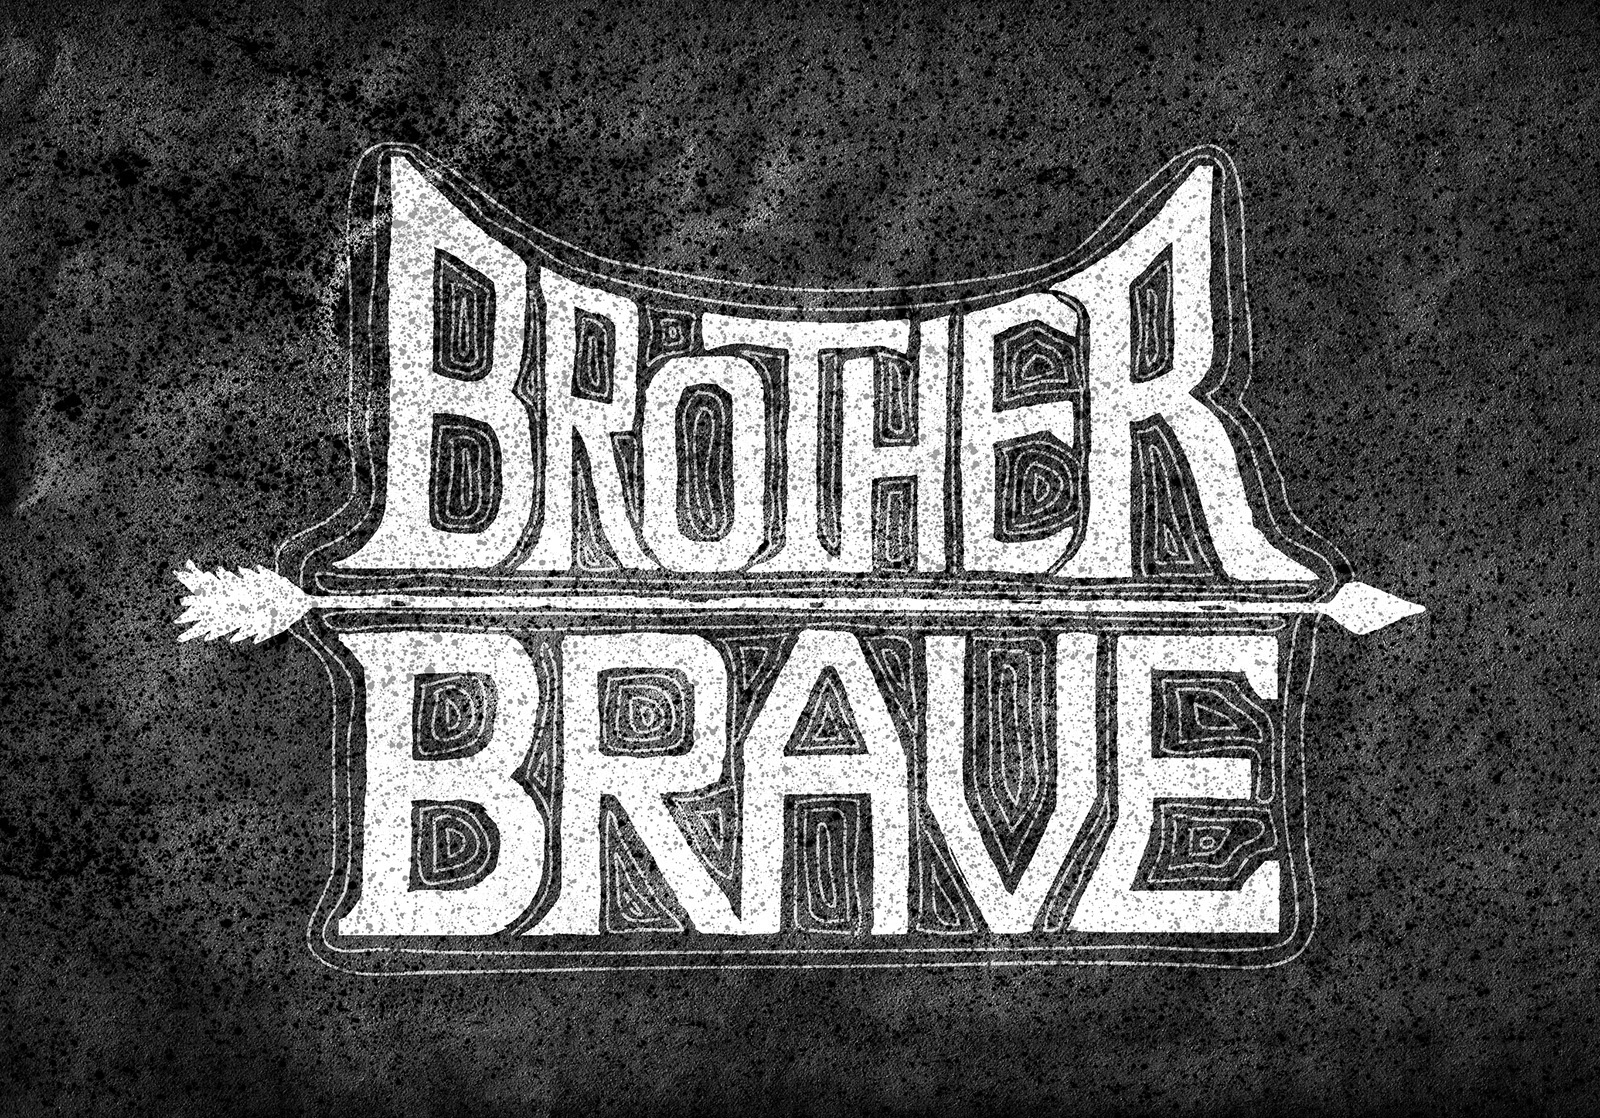 sam broom brother brave illustration hand lettering graphic design coveted crew clothing company